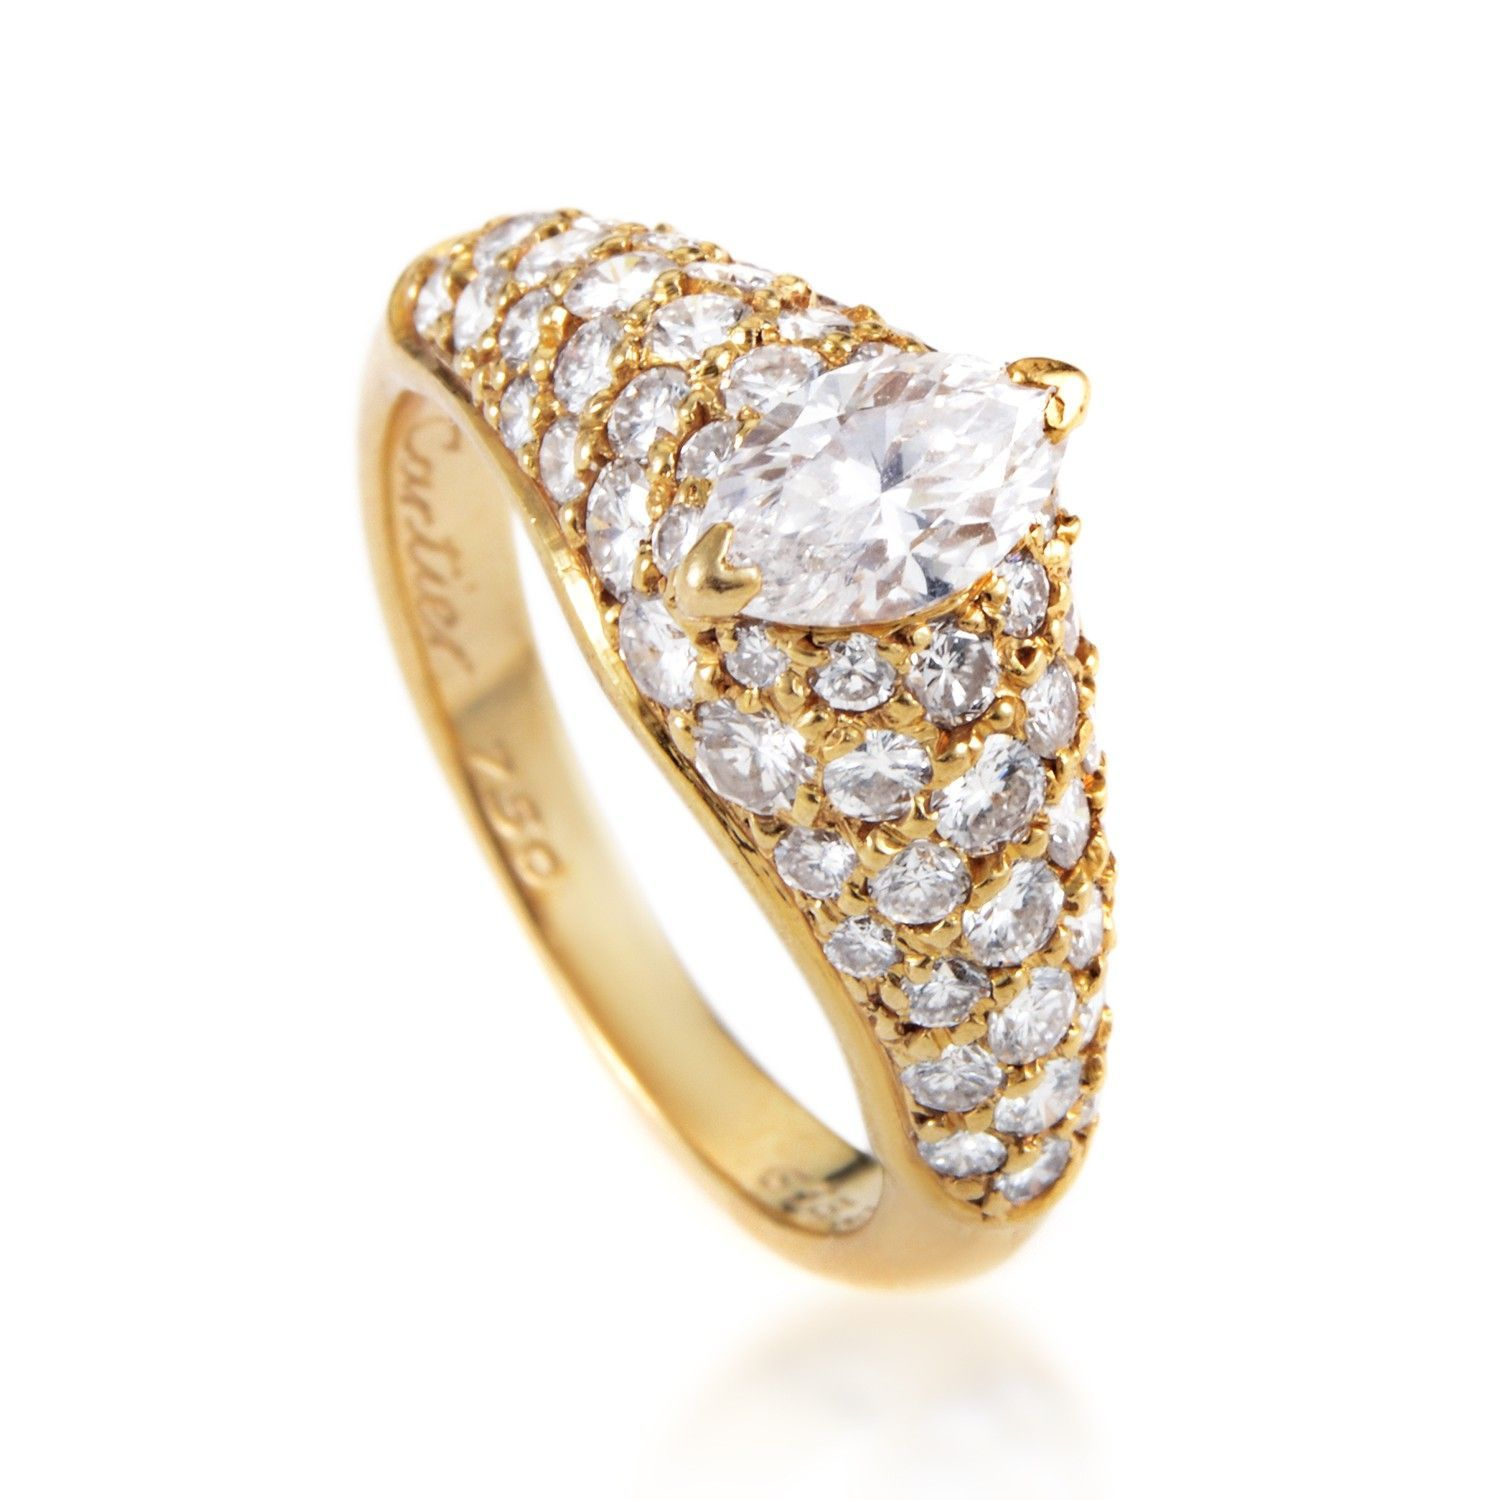 fb646aebd4050 Cartier 18K Yellow Gold ~.60ct Marquise Diamond Engagement Ring